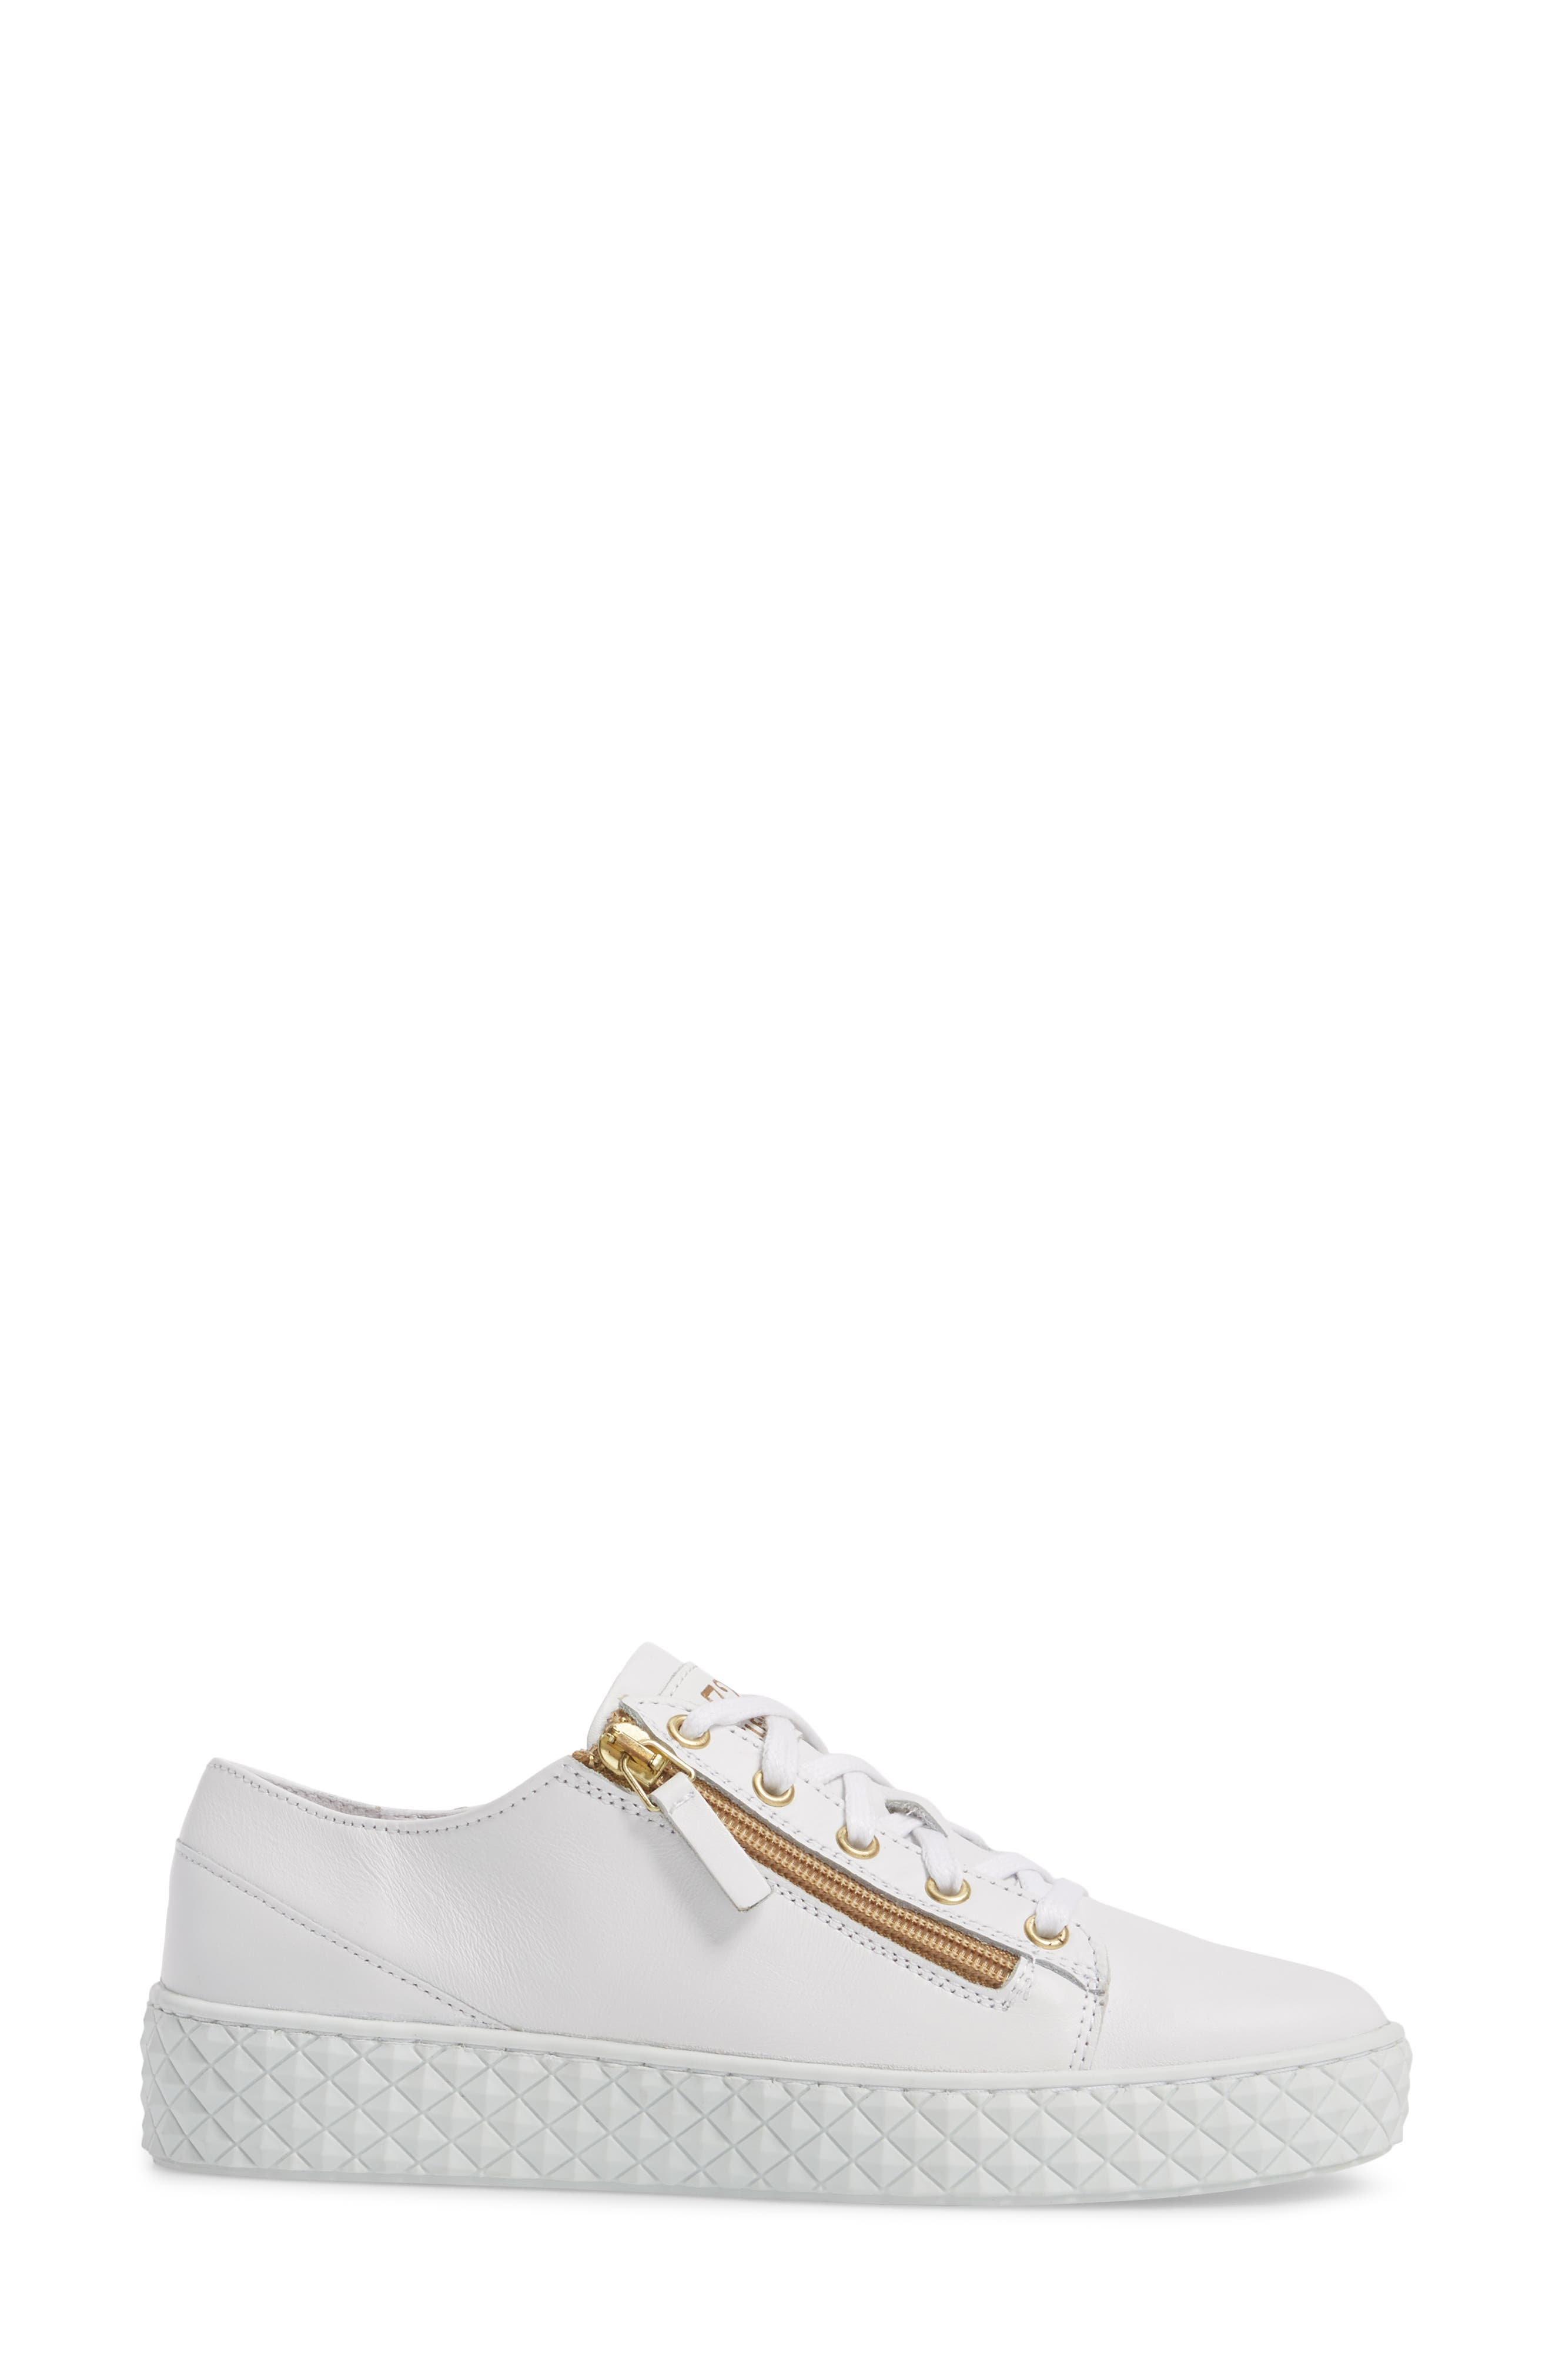 Mira Side Zip Low Top Sneaker,                             Alternate thumbnail 3, color,                             Optic White/ Gold Leather